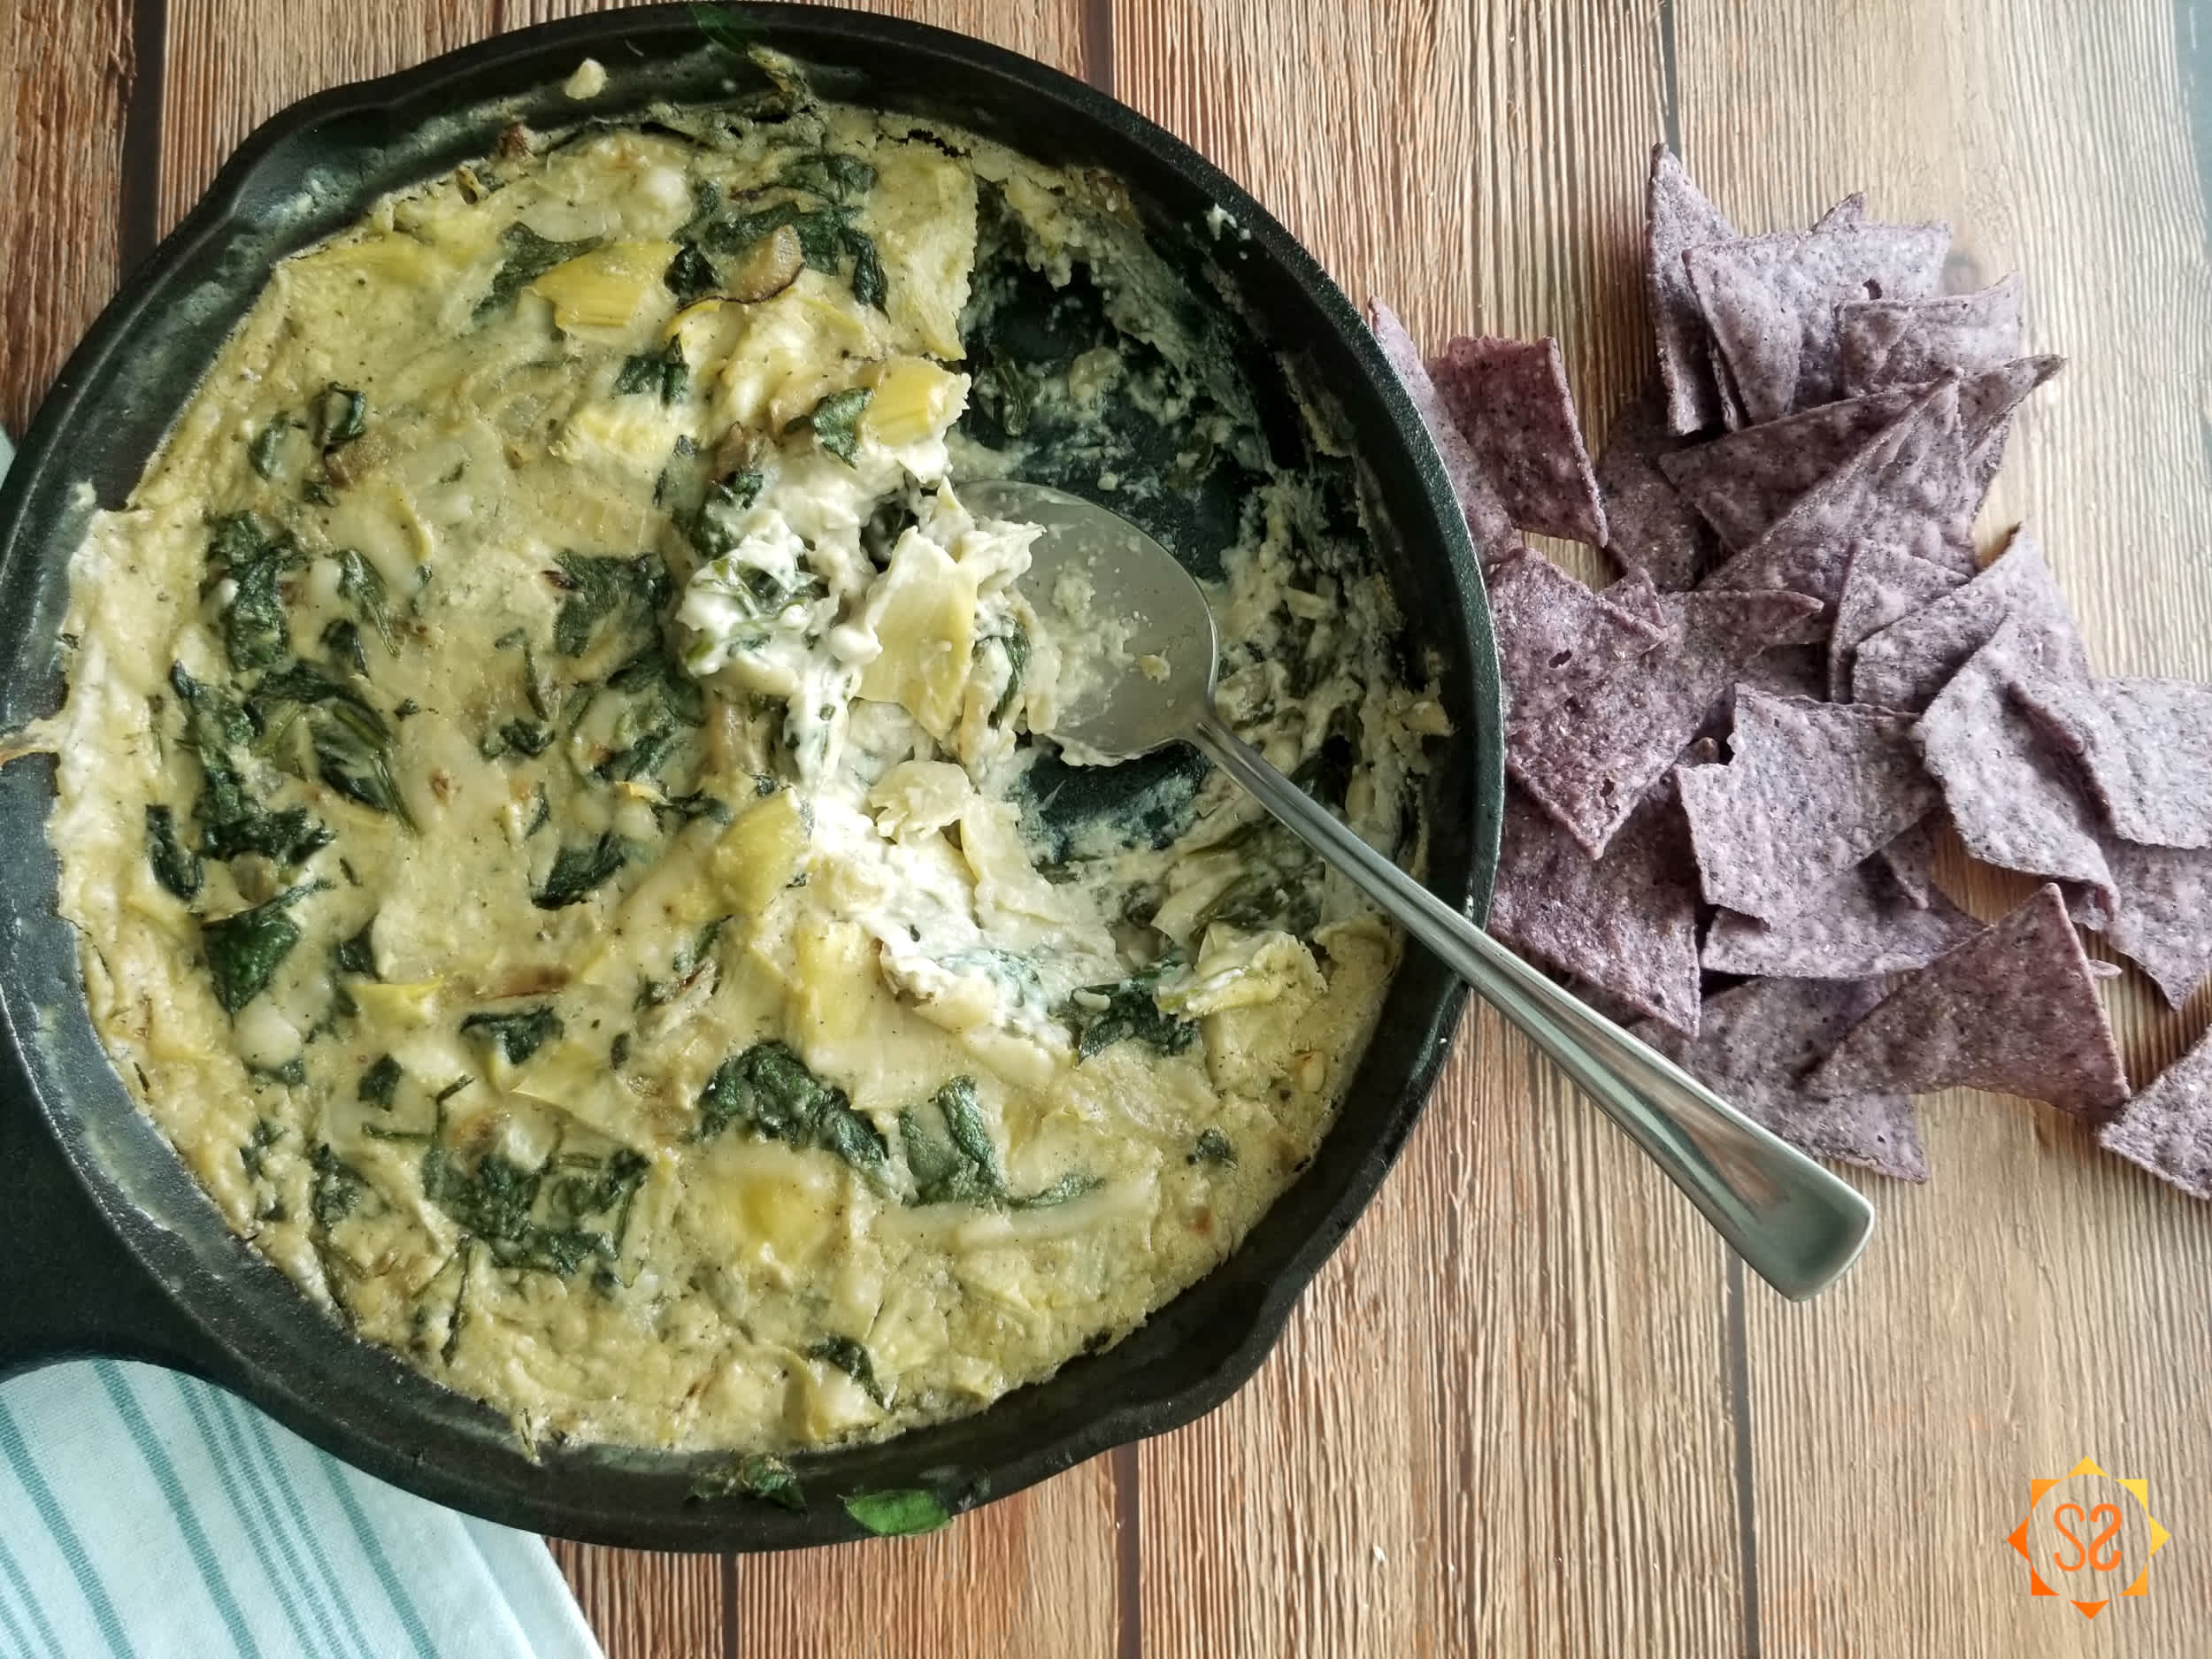 Spinach dip in a pan with a spoon, and chips on the side